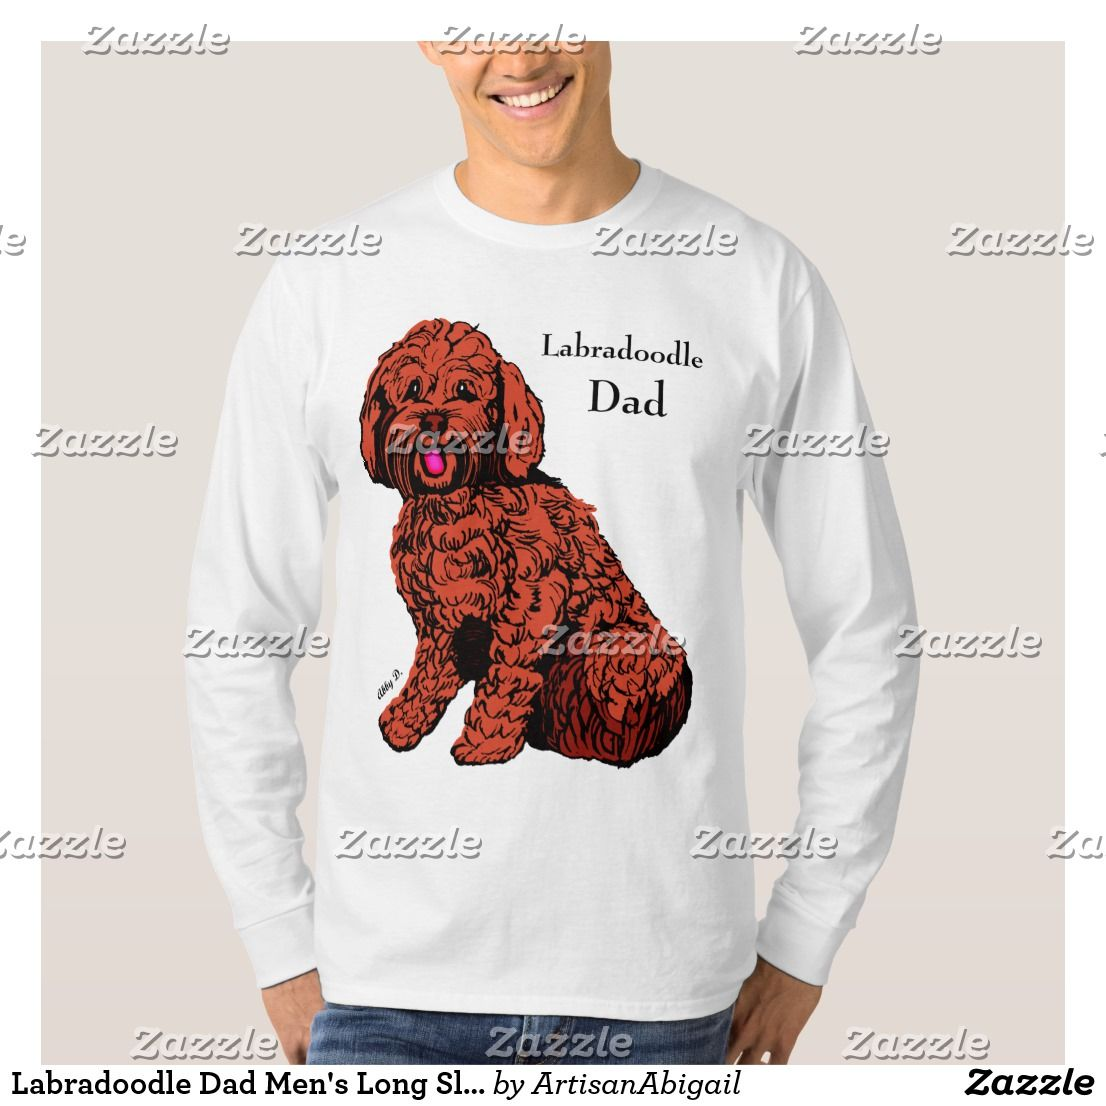 Labradoodle Dad Mens Long Sleeve T Shirt ArtisanAbigail At Zazzle